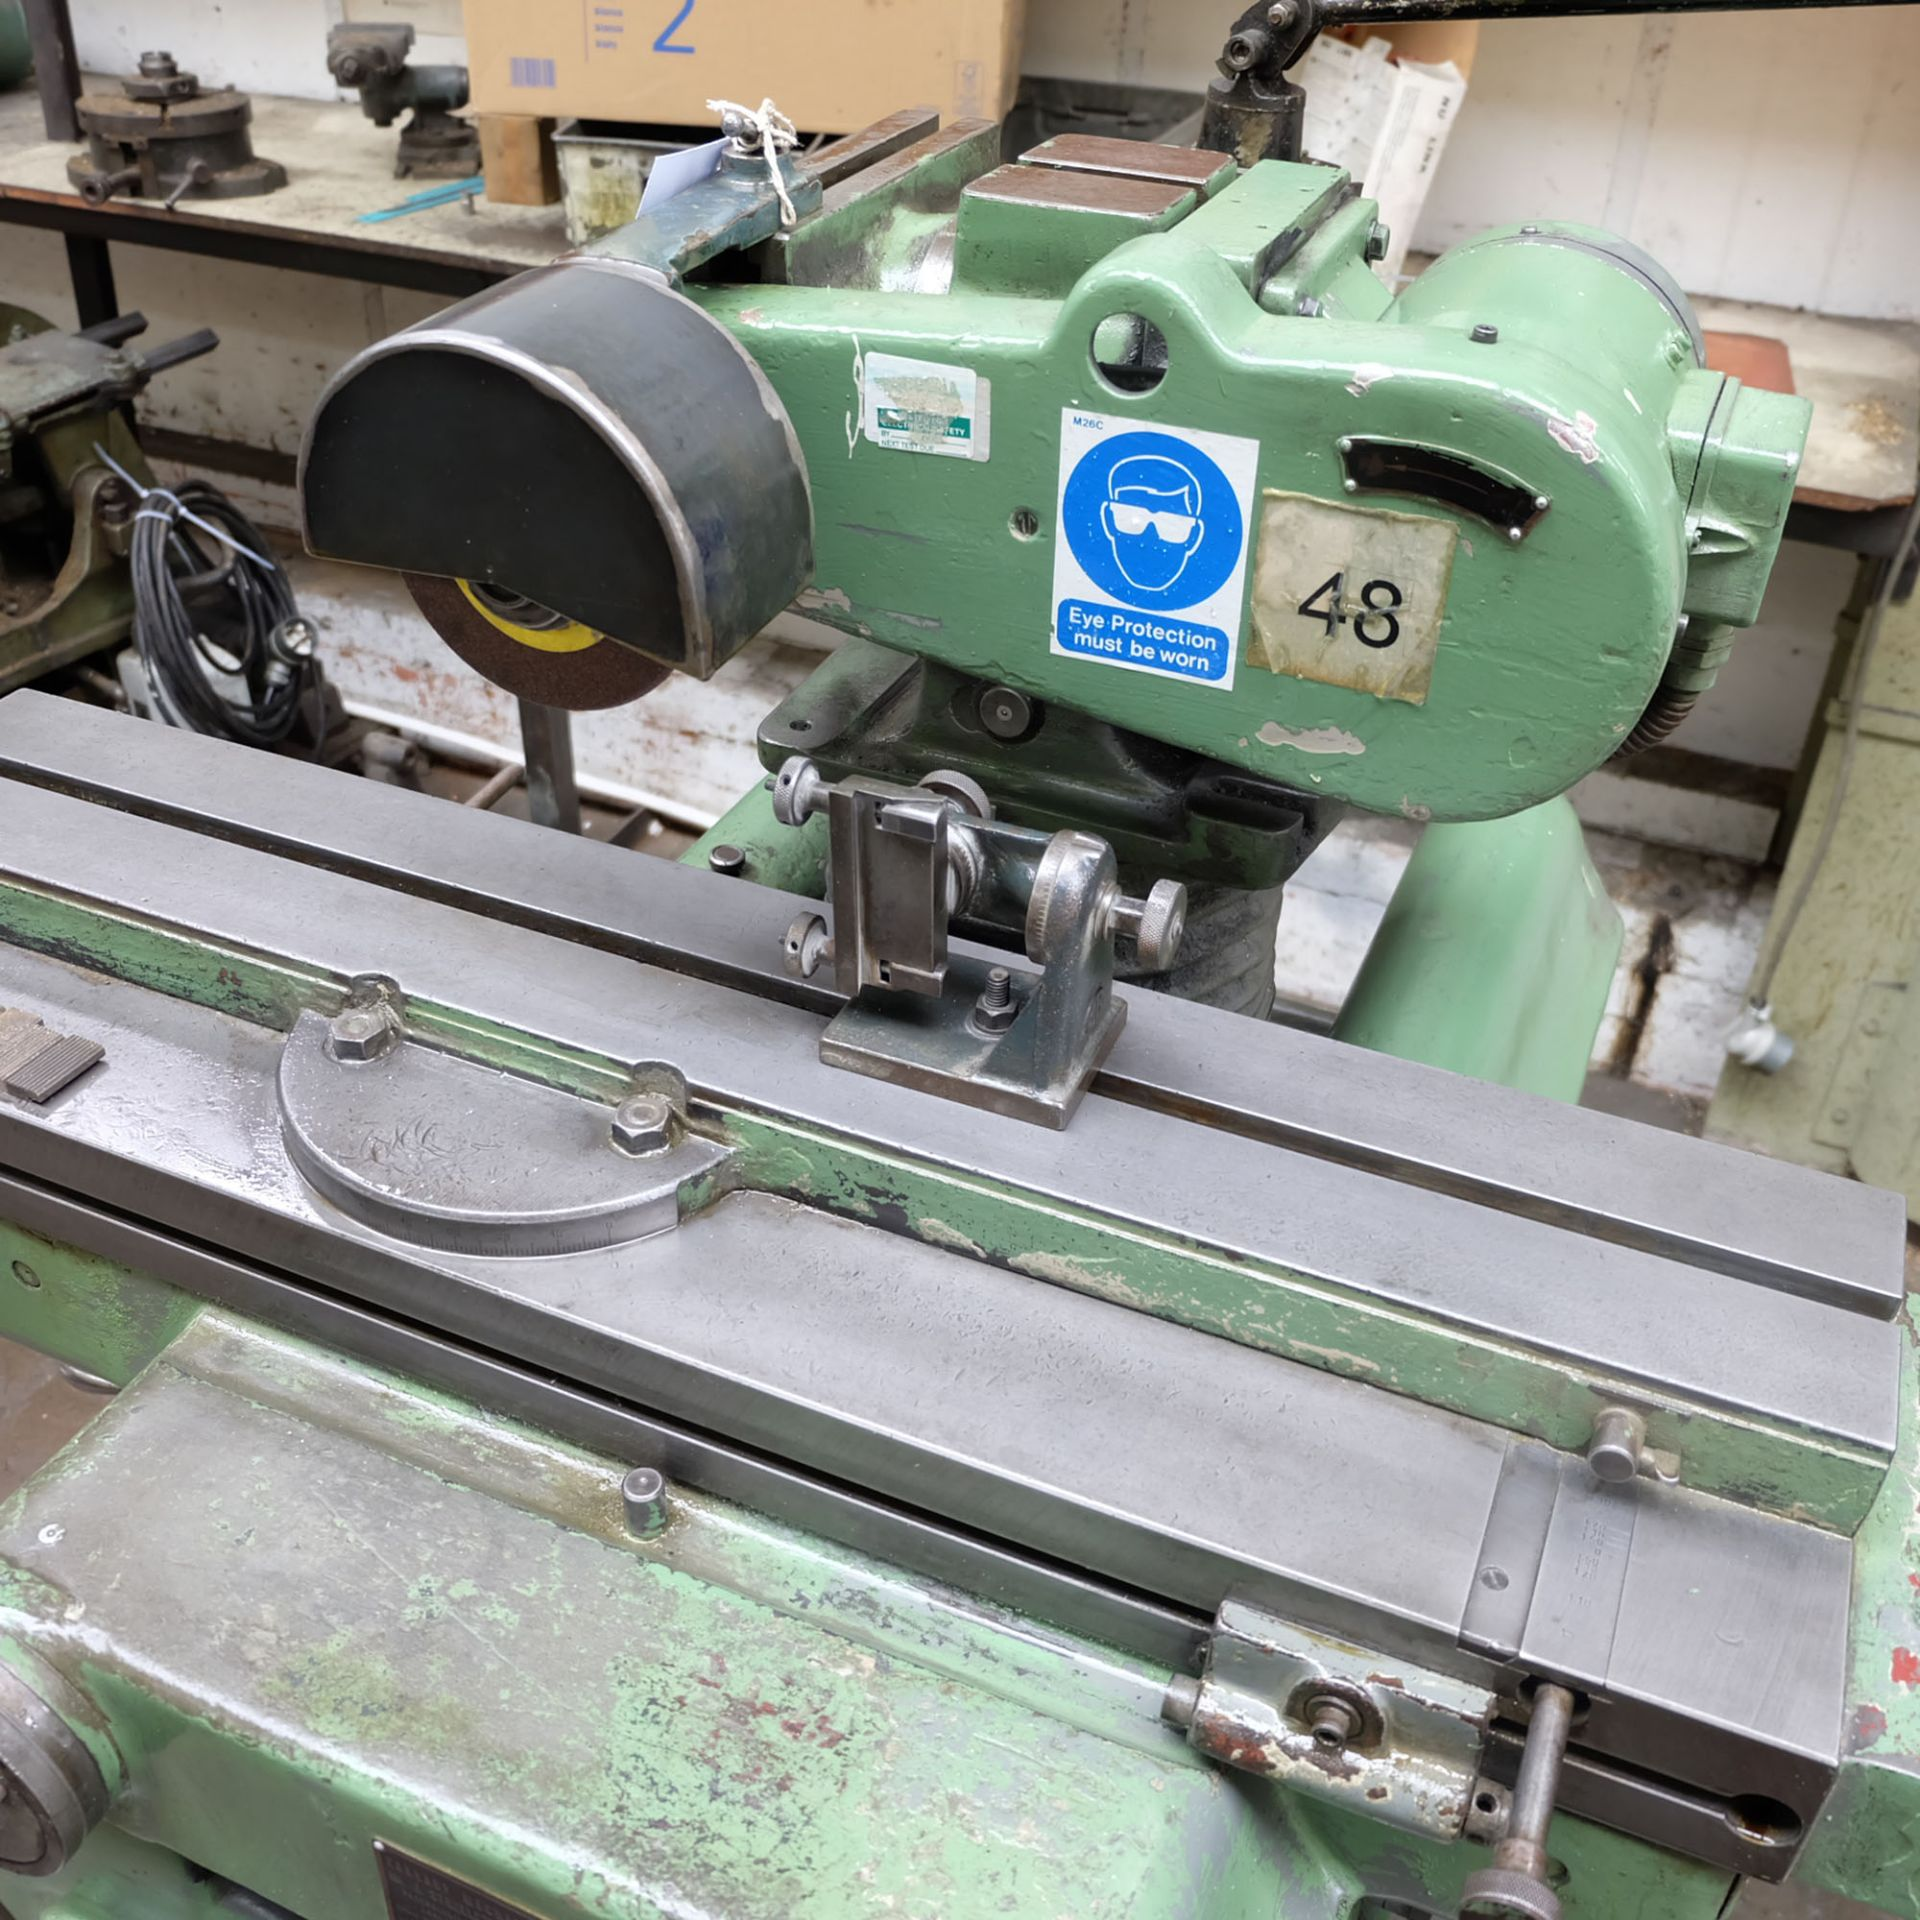 Jotes Model NVA-25 Tool and Cutter Grinder. Rise and Fall and Tilt and Swivel Head. - Image 3 of 6